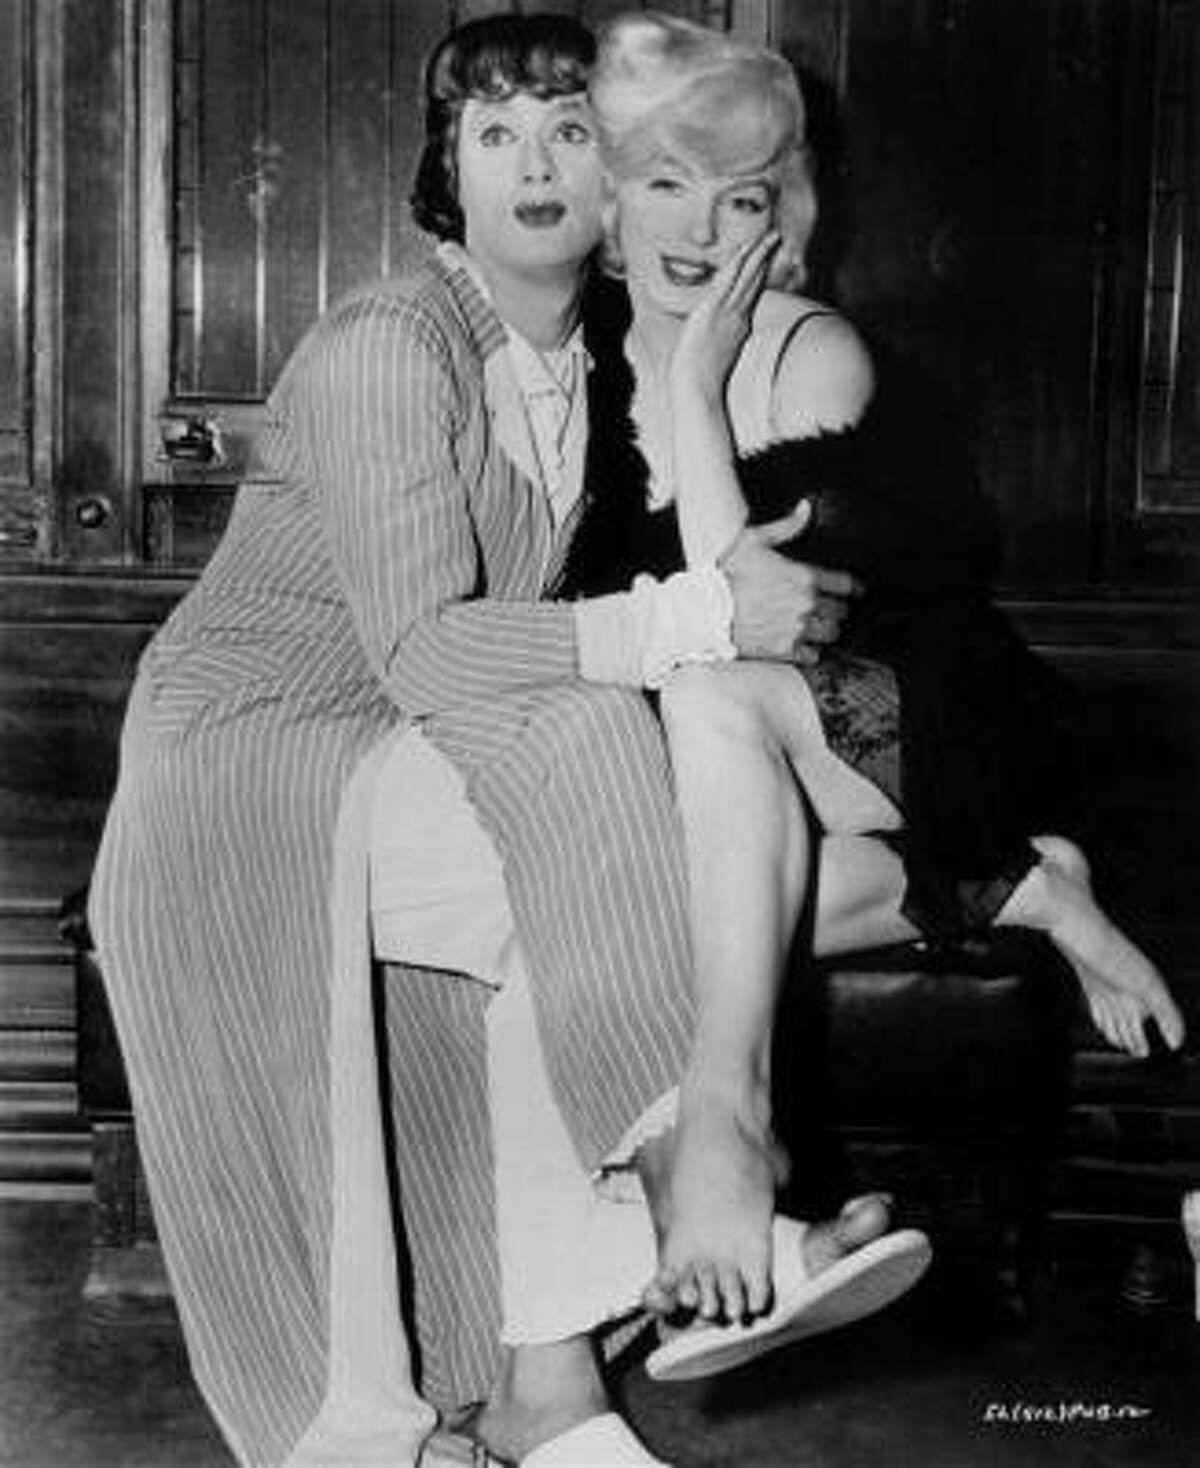 Tony Curtis and Marilyn Monroe in 1959 on the set of the milestone comedy,